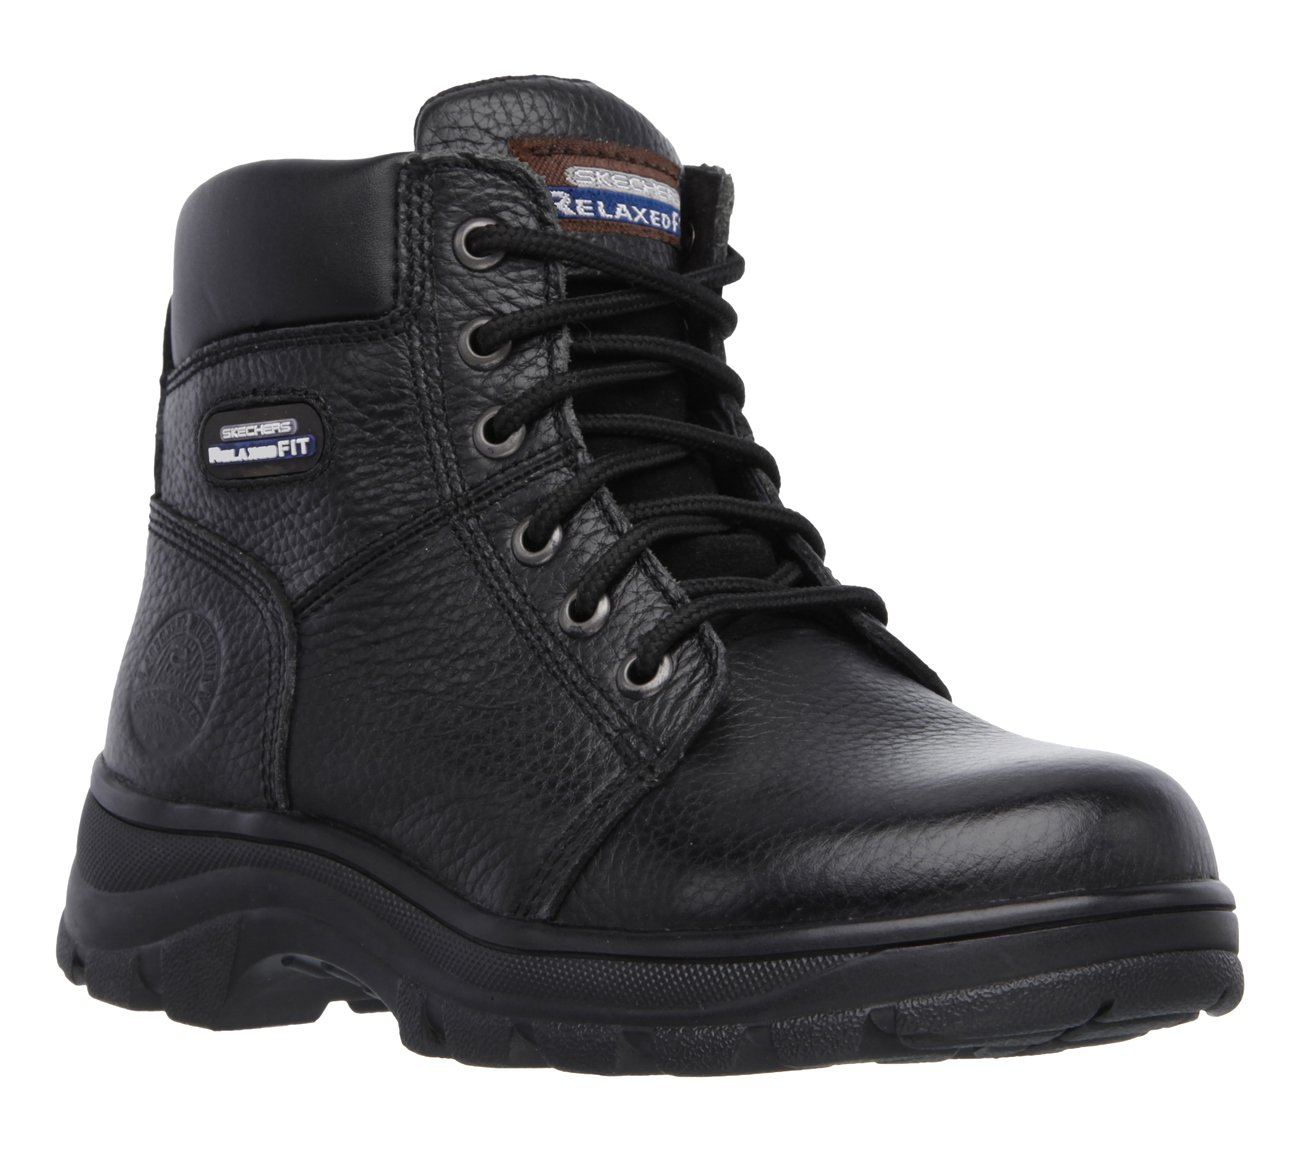 Skechers Work Relaxed Fit Workshire Fitton Womens Soft Toe Boots Black 7 by Skechers (Image #1)